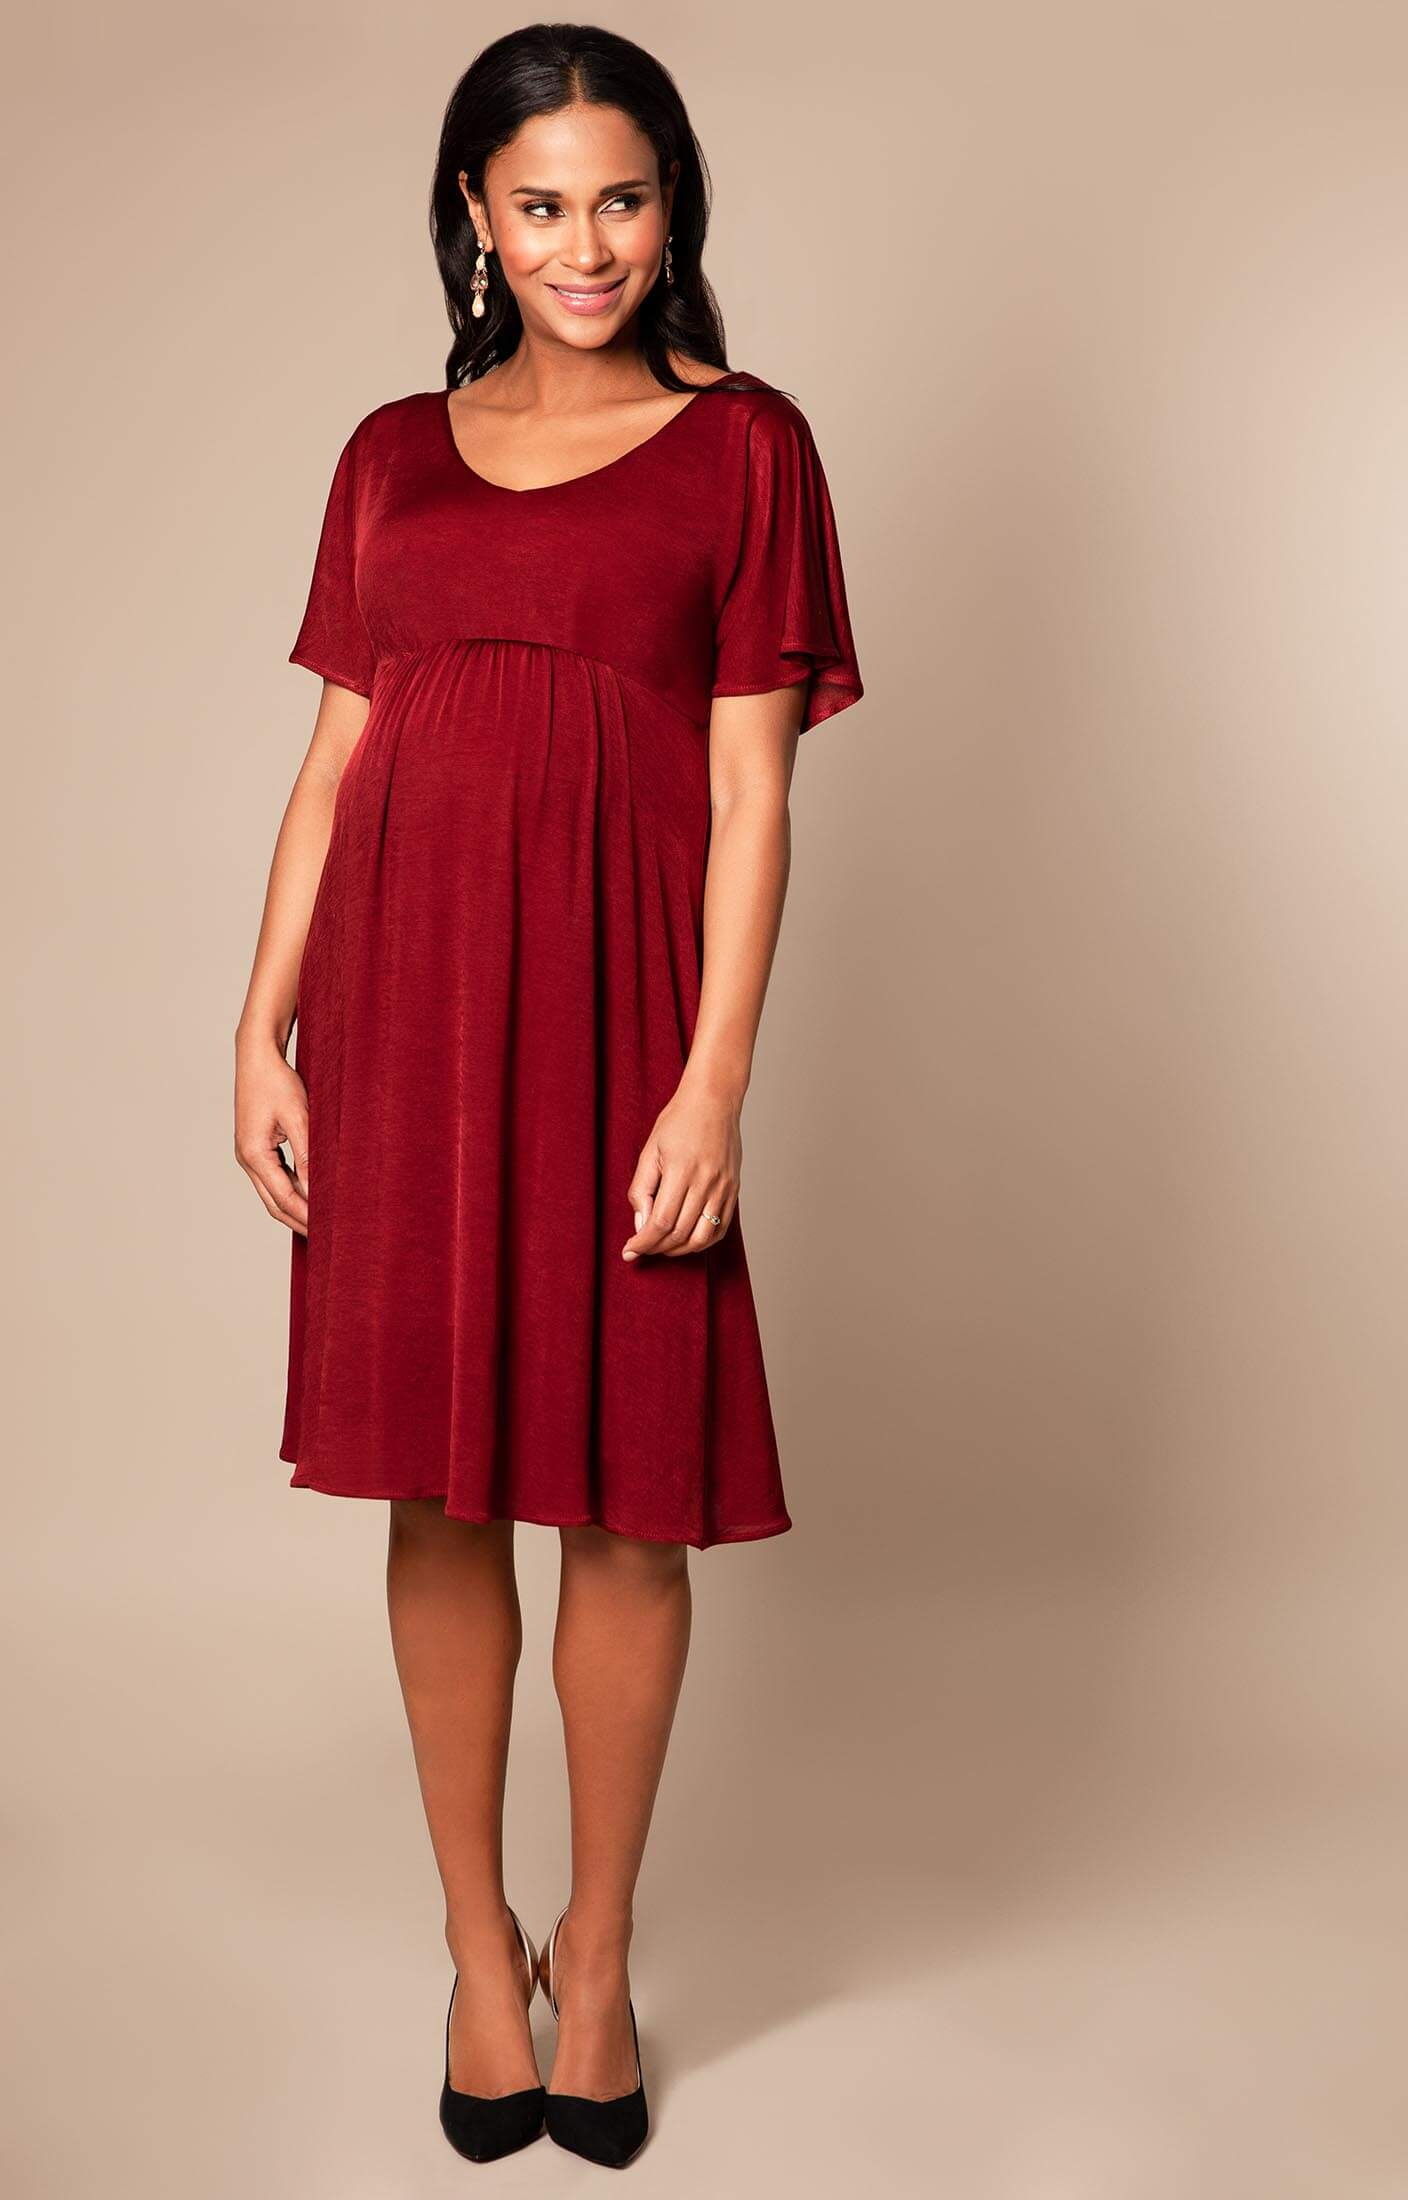 Kimono dress berry red